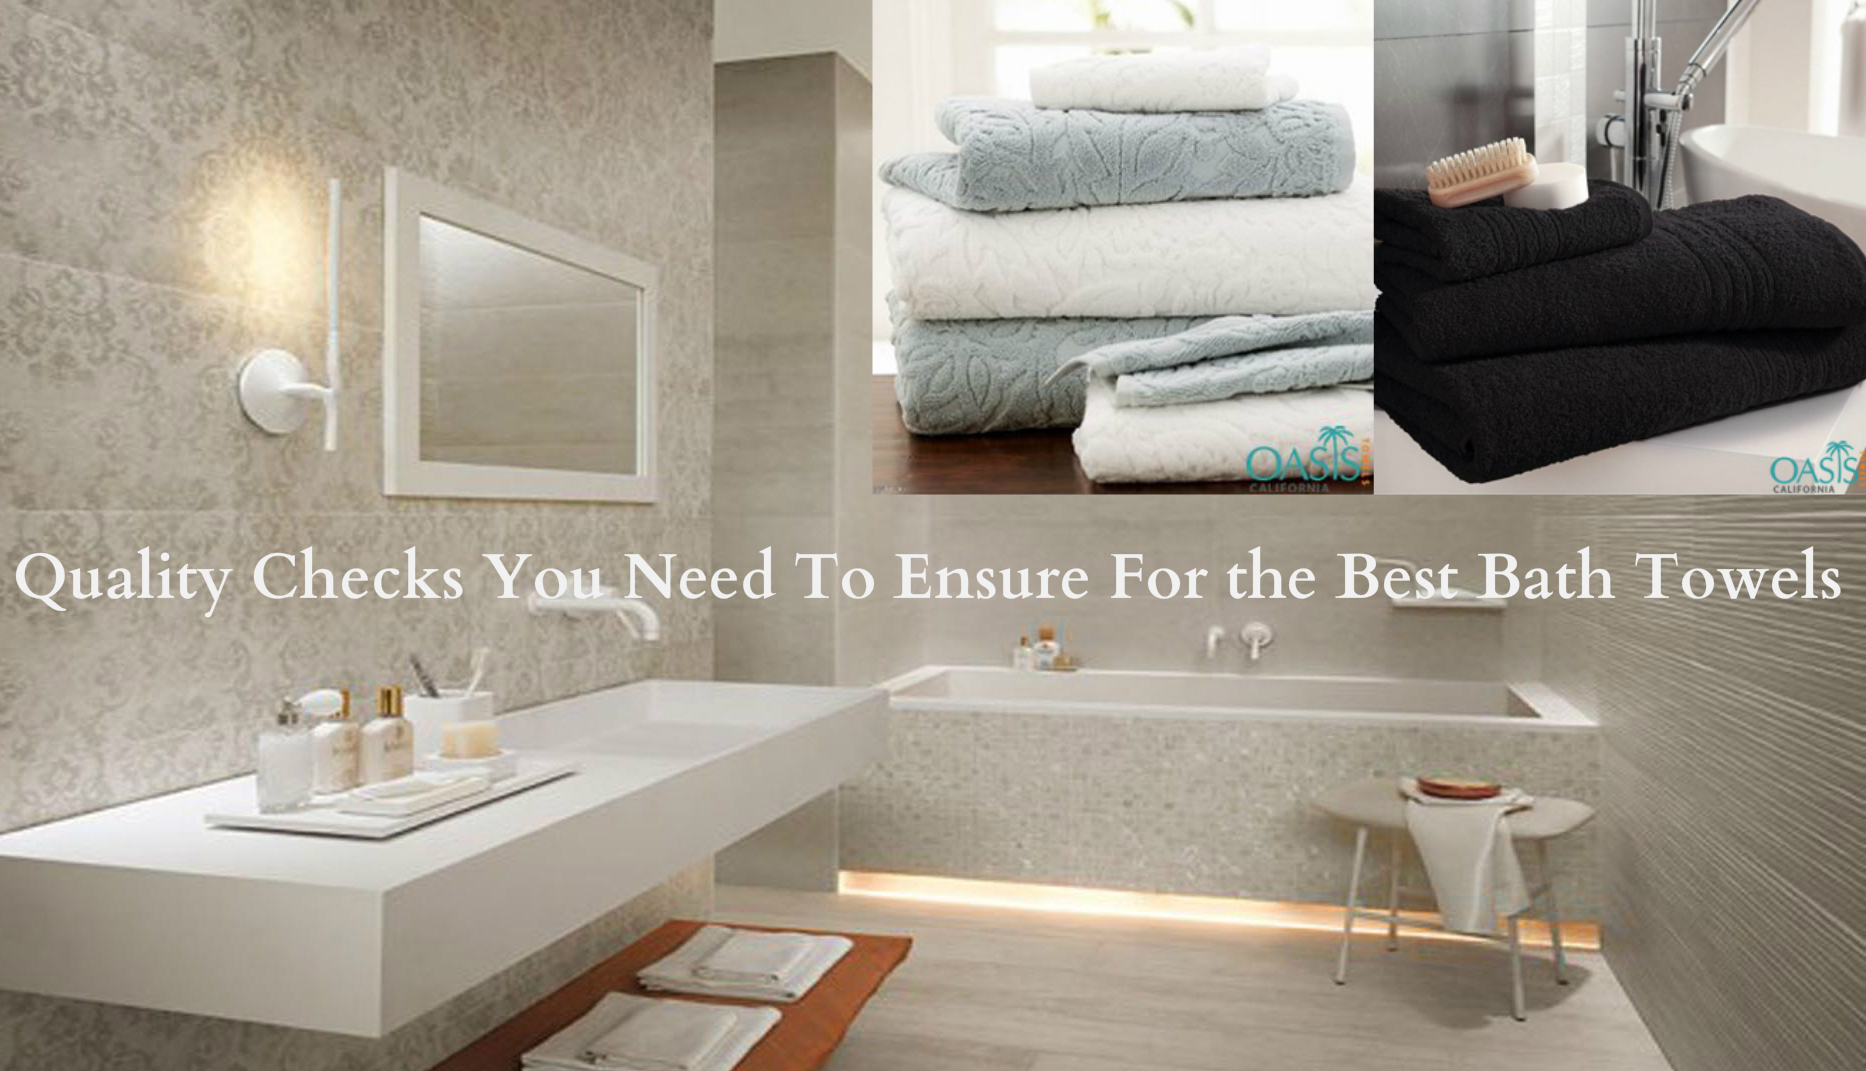 Quality Checks You Need To Ensure For the Best Bath Towels